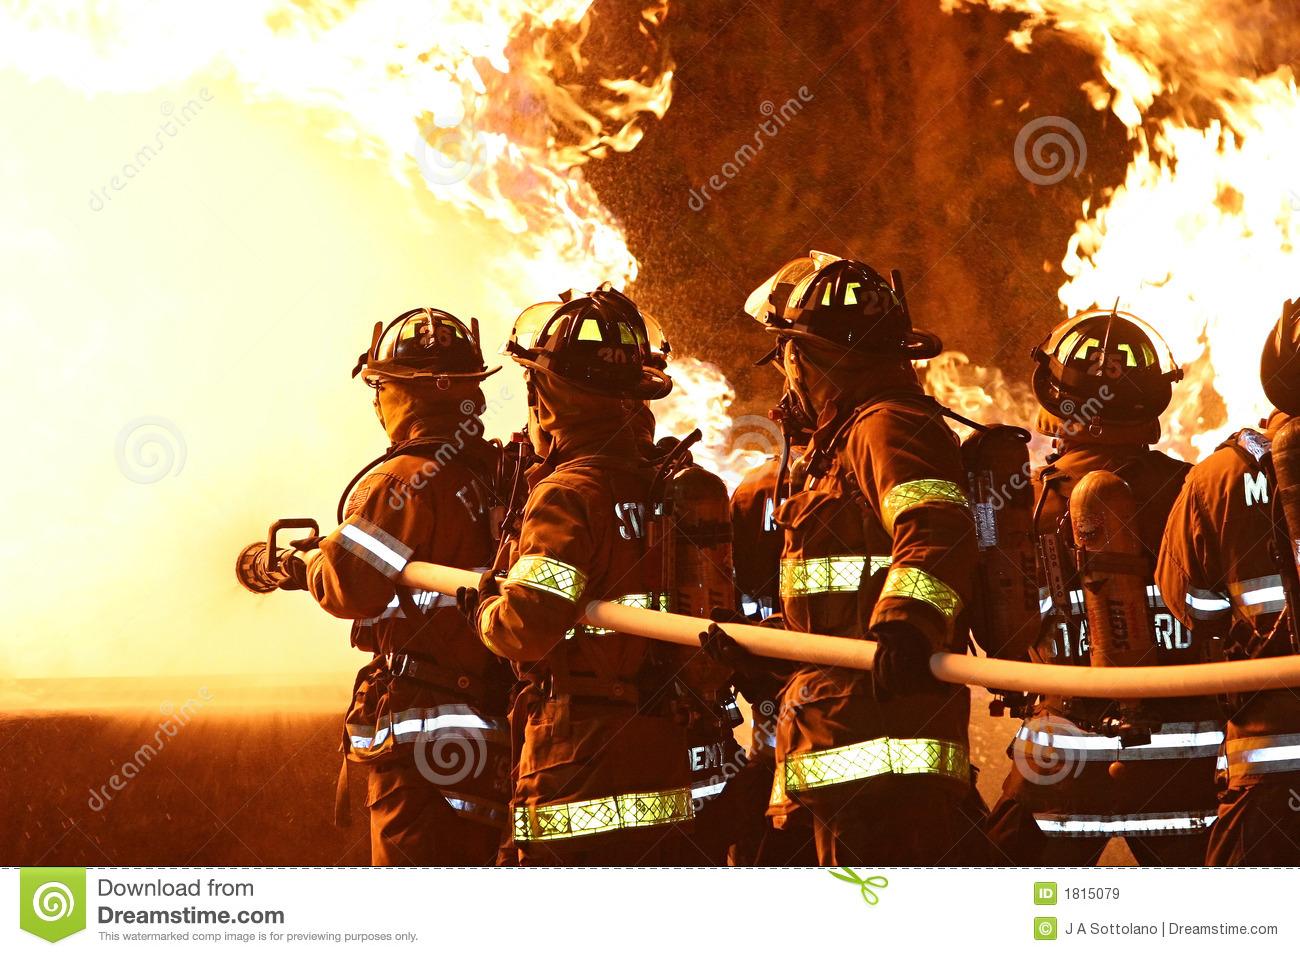 firefighters battling flames royalty free stock images firefighter clipart black and white firefighter clip art calendar